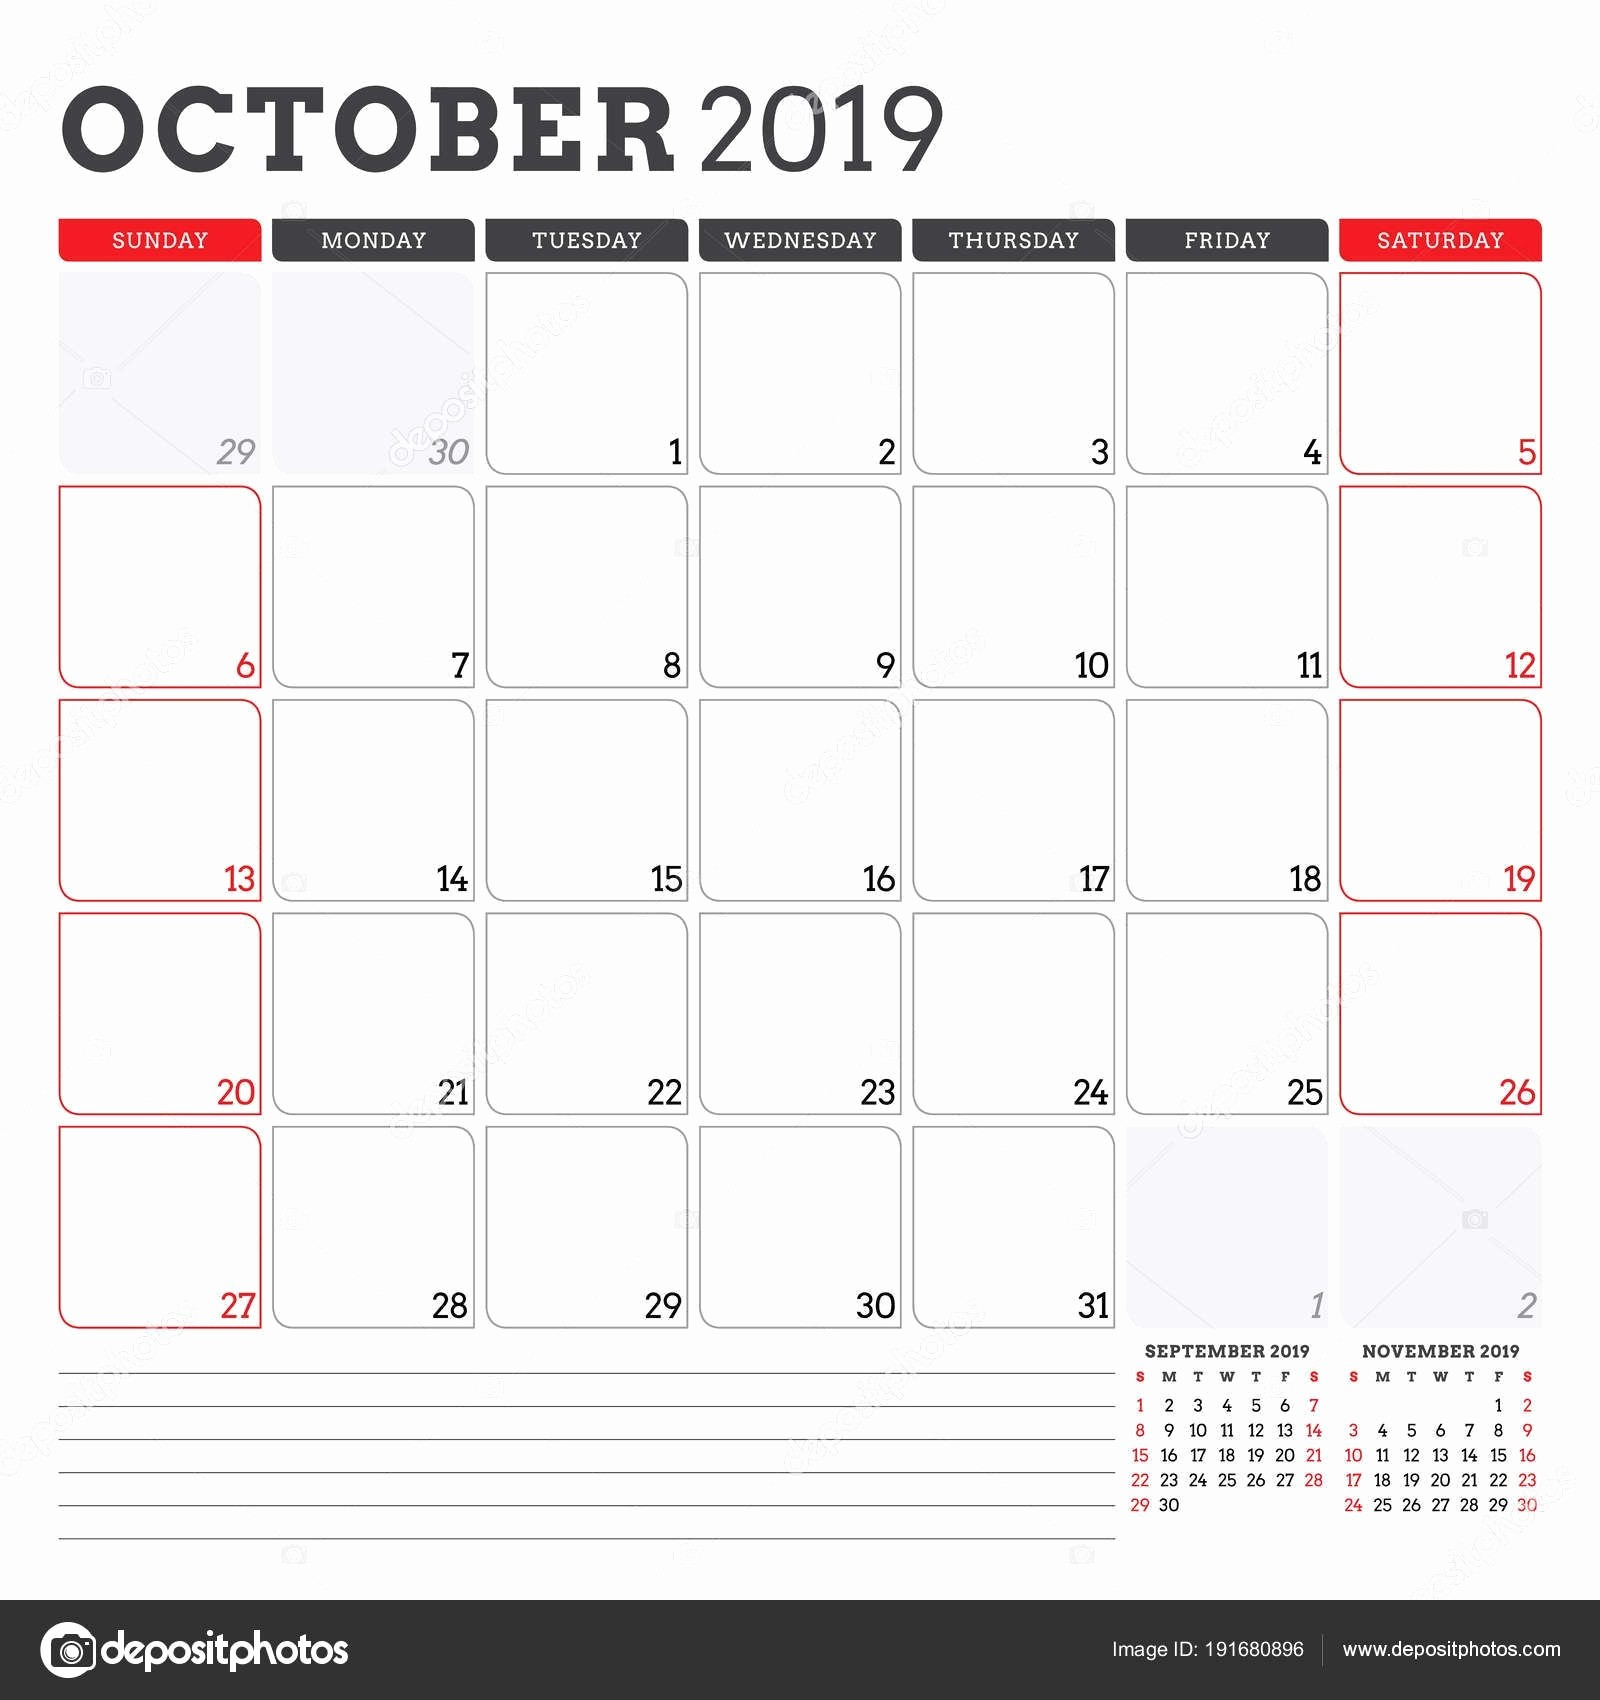 Monday to Sunday Calendar Template Best Of Monday to Sunday Calendar Template October 2019